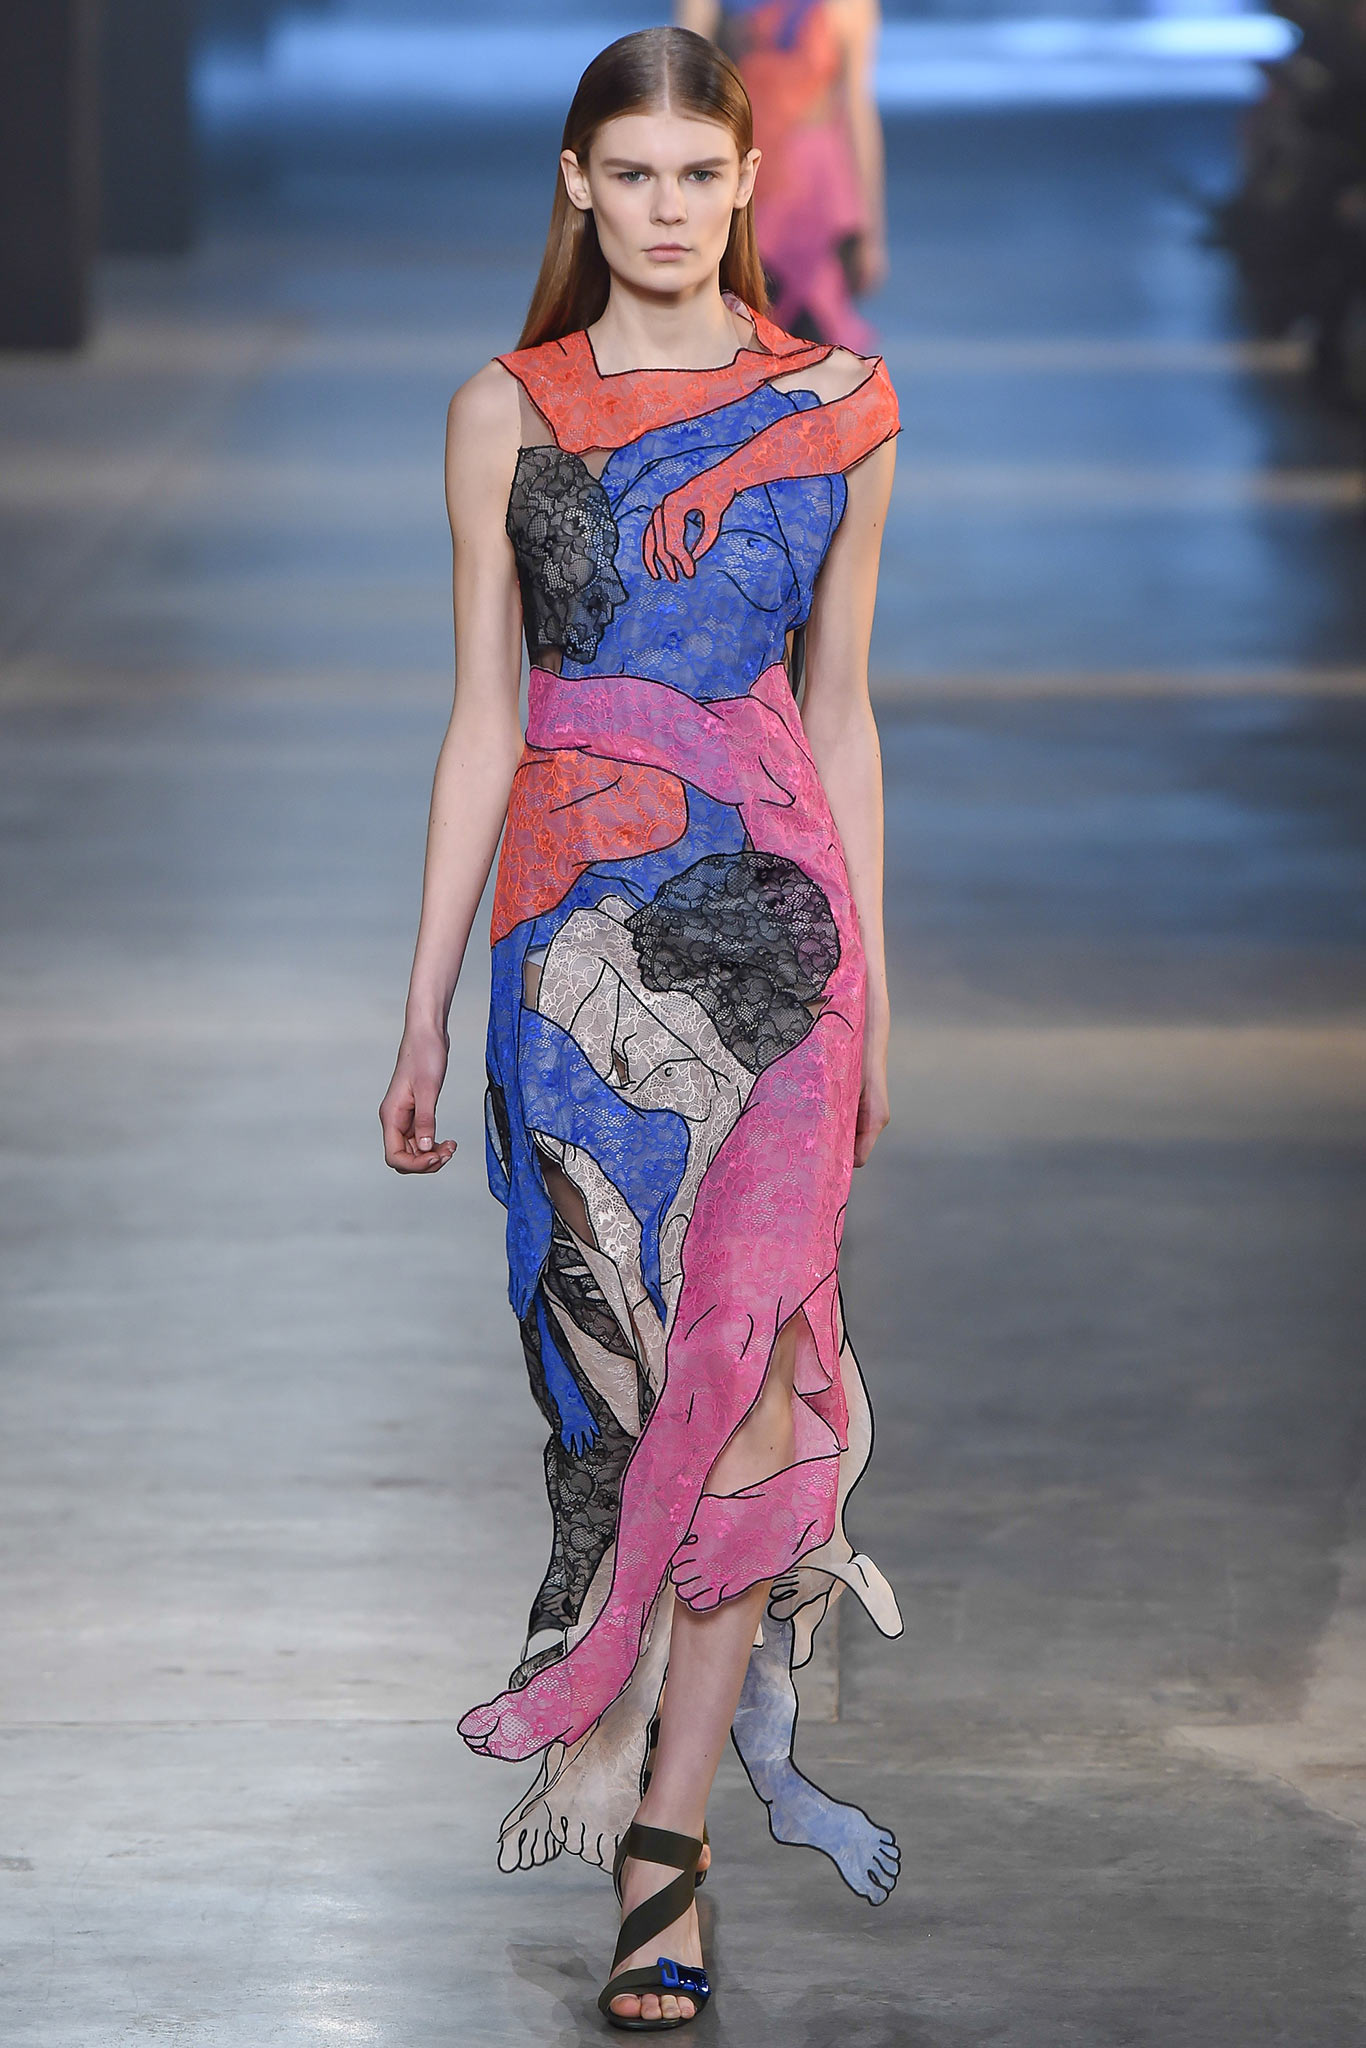 Christopher kane fall / winter collection - london fashion week